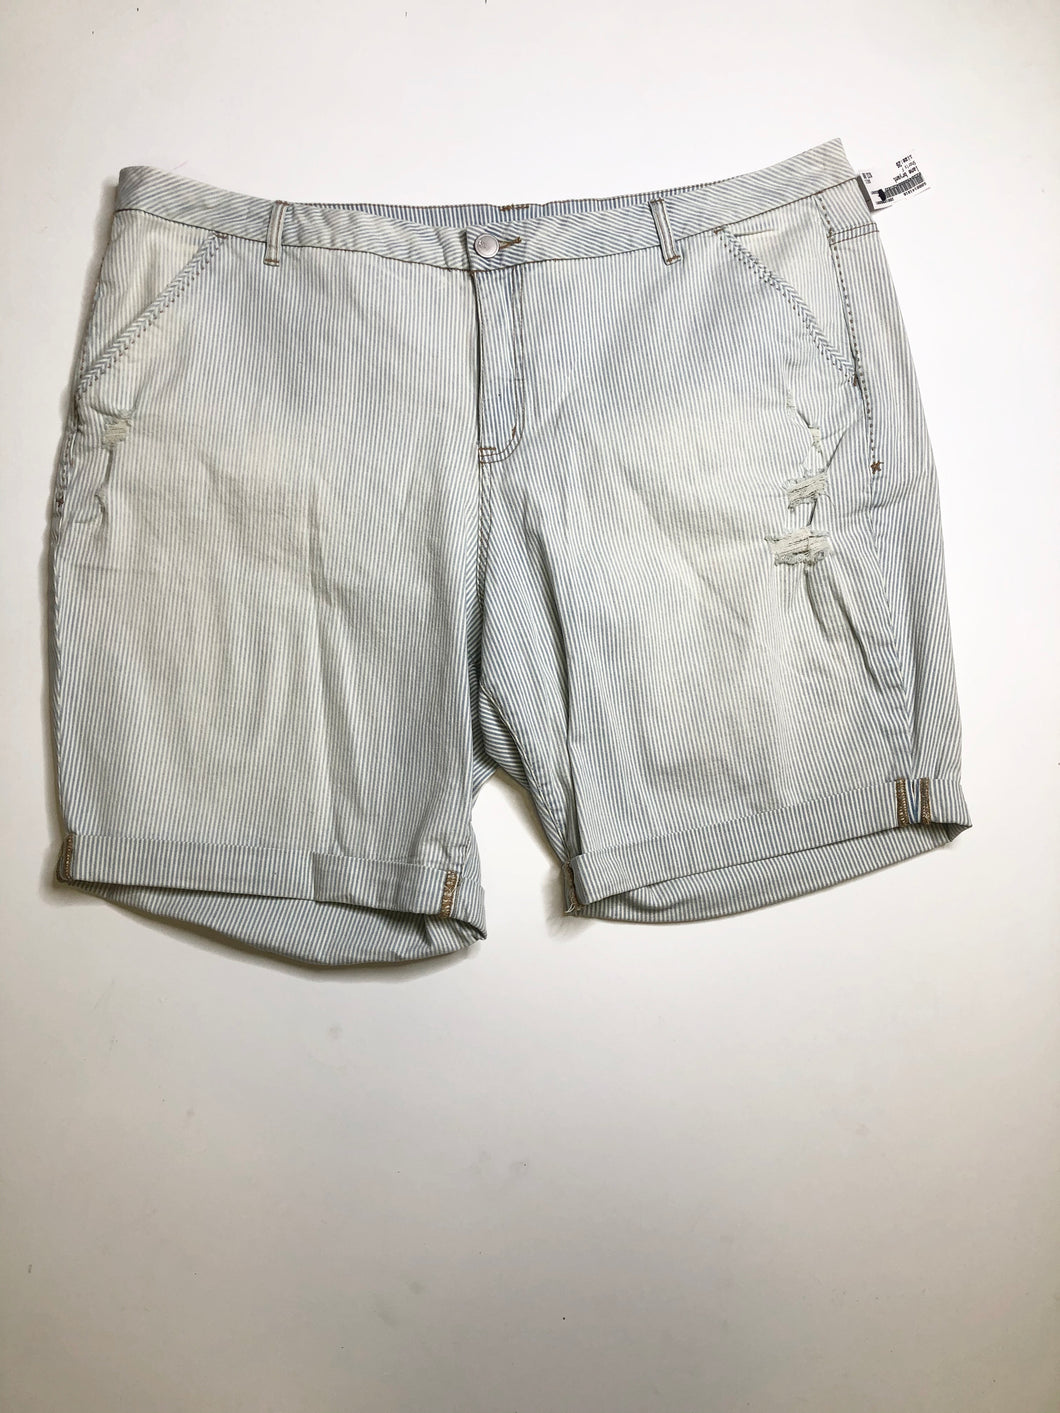 Lane Bryant shorts SIZE 26